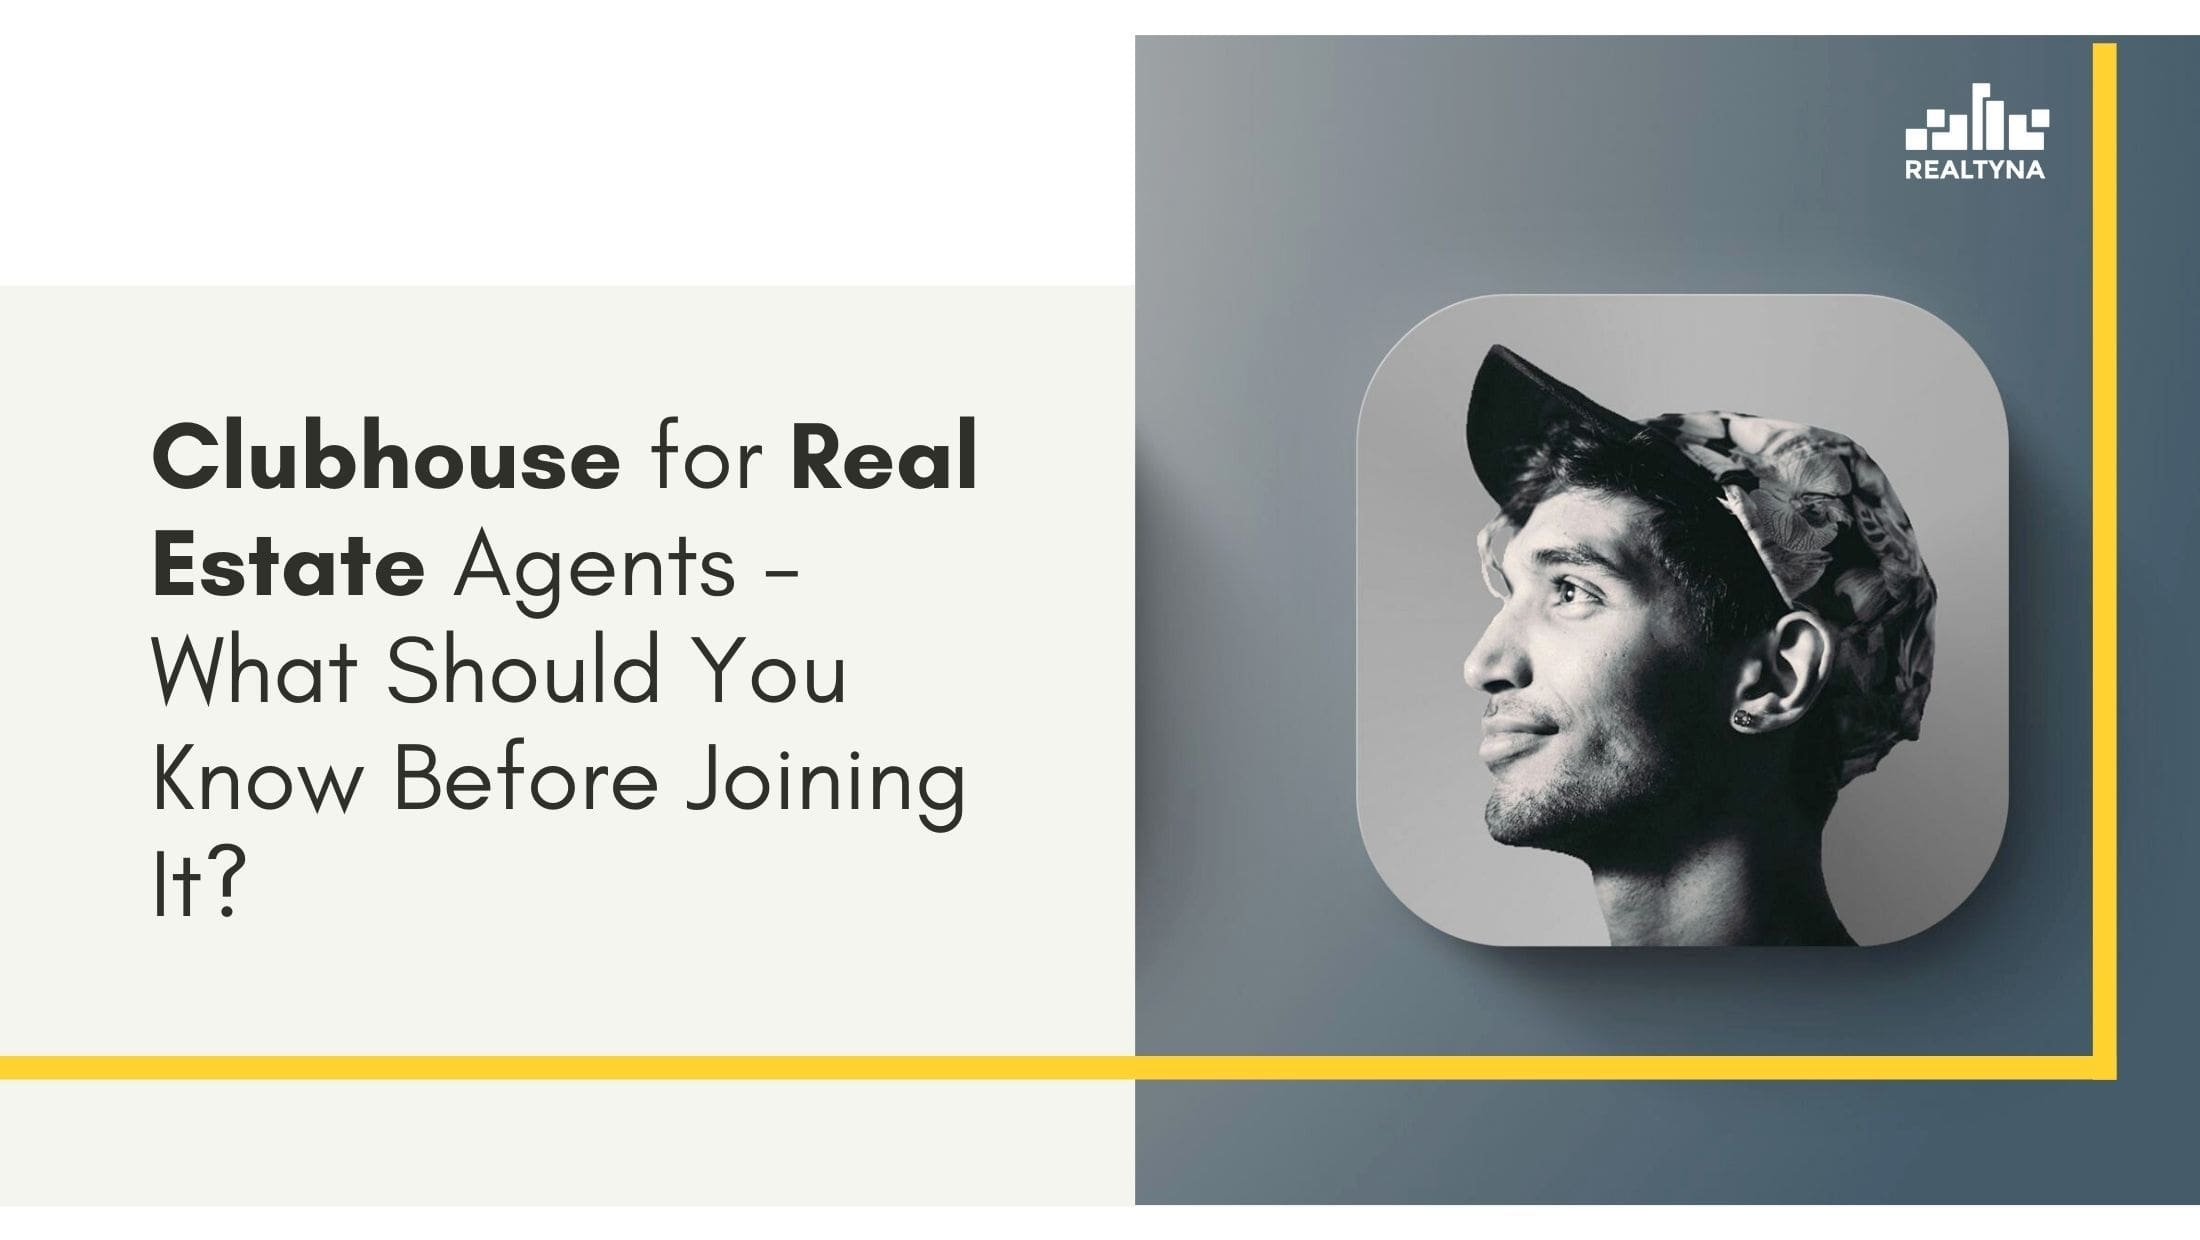 Clubhouse for Real Estate Agents- What Should You Know Before Joining It?